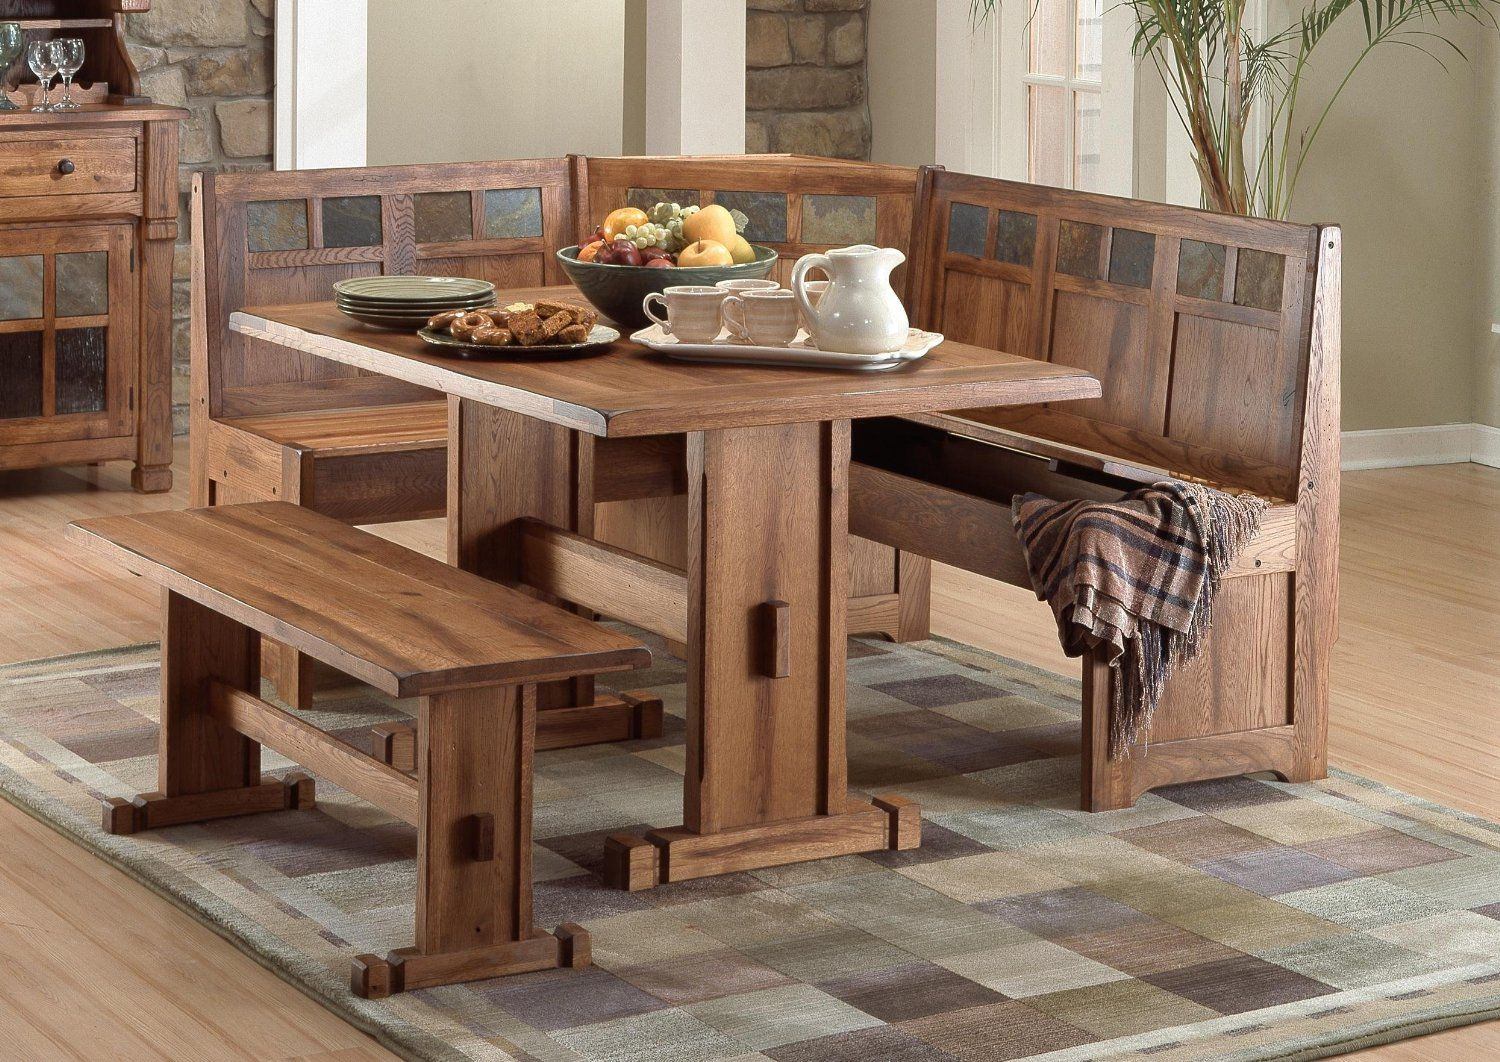 Wood Kitchen Table With Bench Seating Designs Ideas & Wood Kitchen Table With Bench Seating Designs Ideas | Dining Bench ...